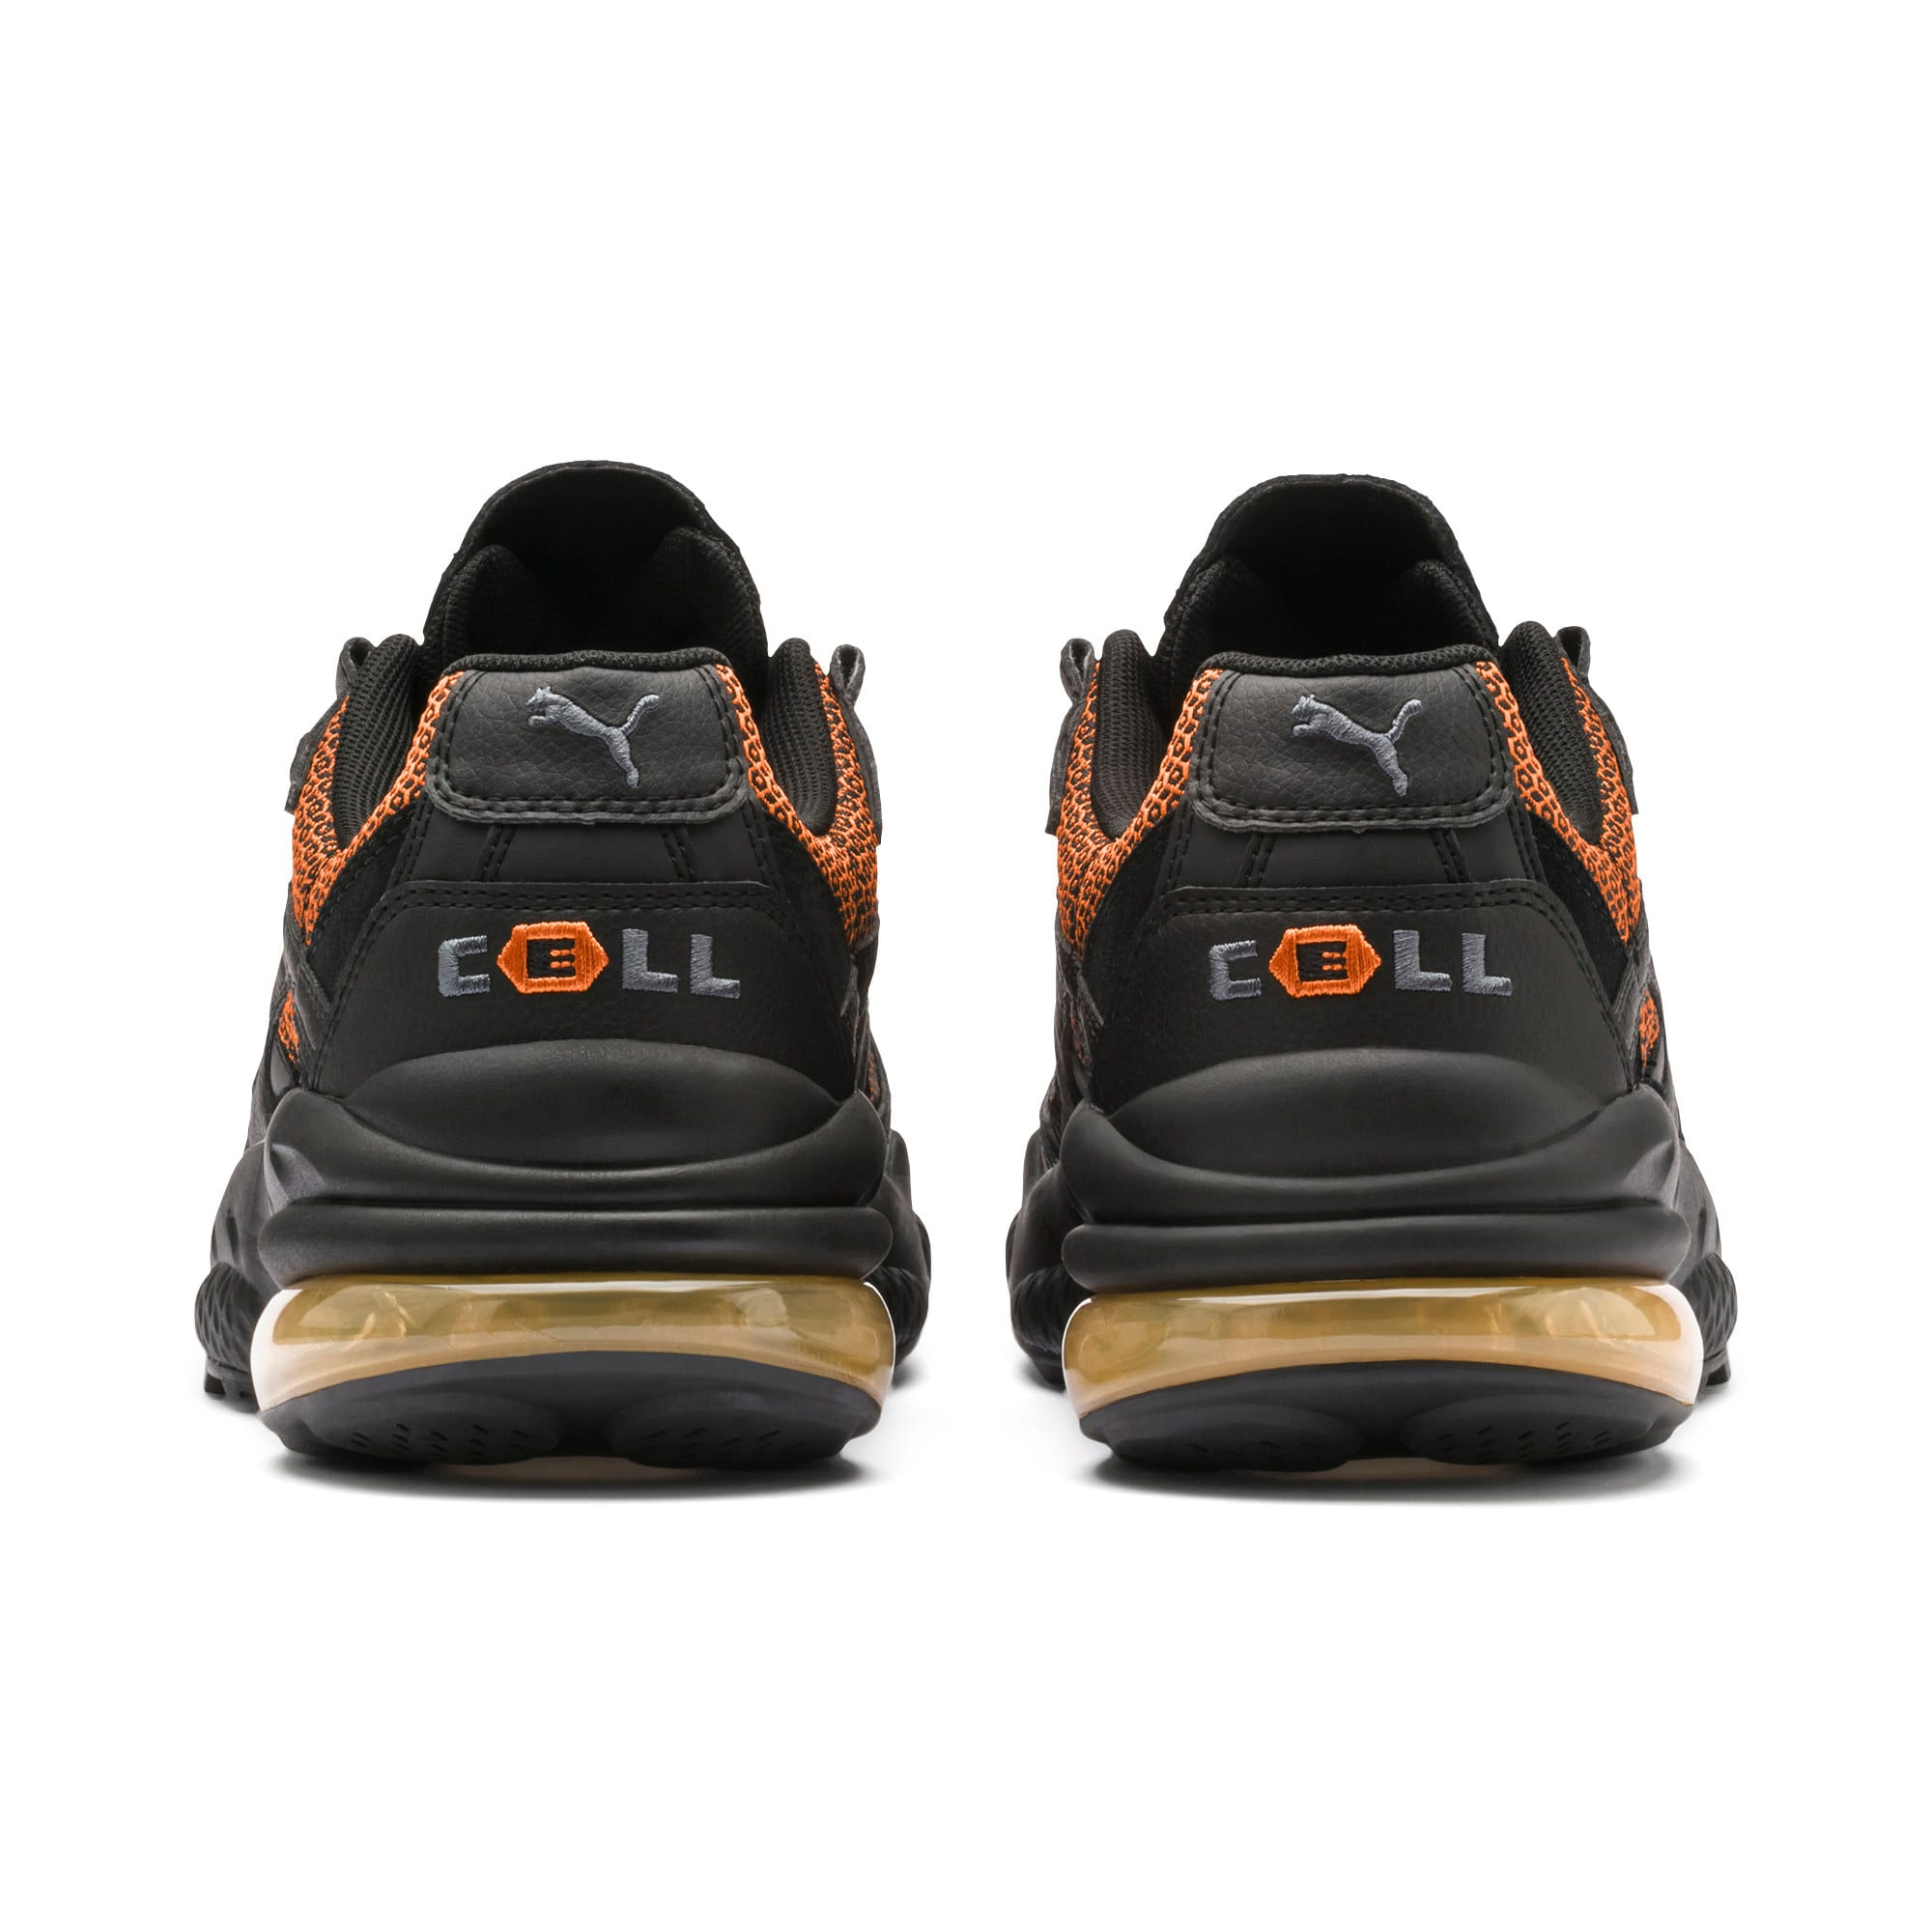 Thumbnail 4 of CELL Venom Lux Trainers, Puma Black-Jaffa Orange, medium